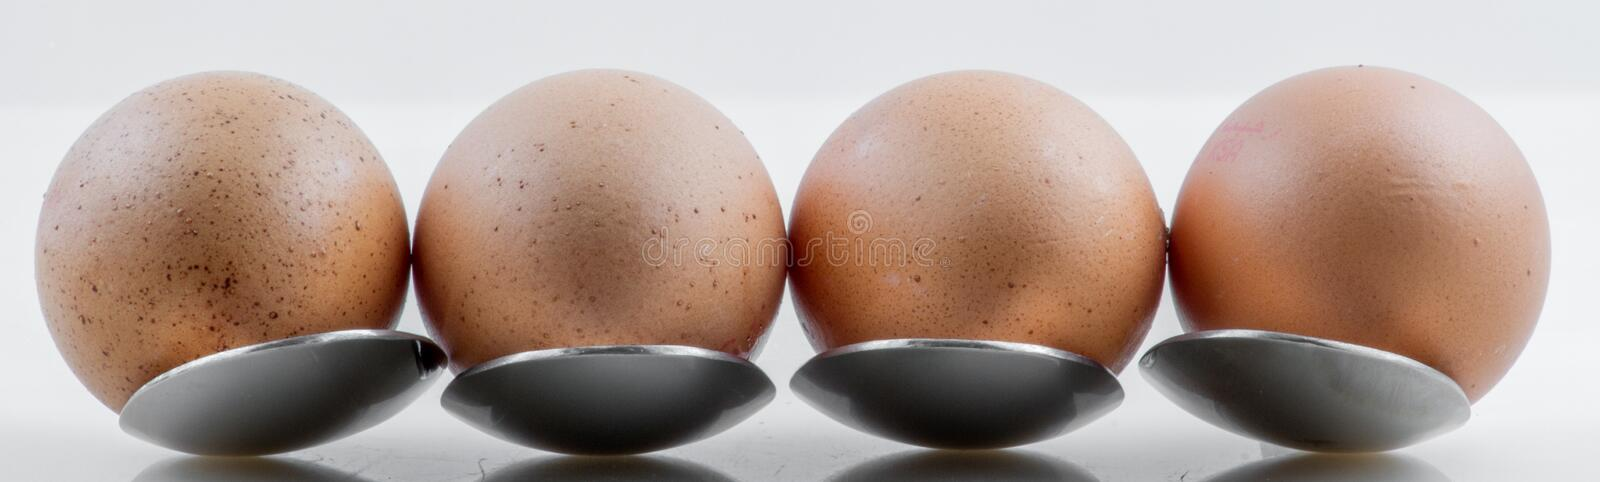 Closeup for eggs on metal spoon stock image